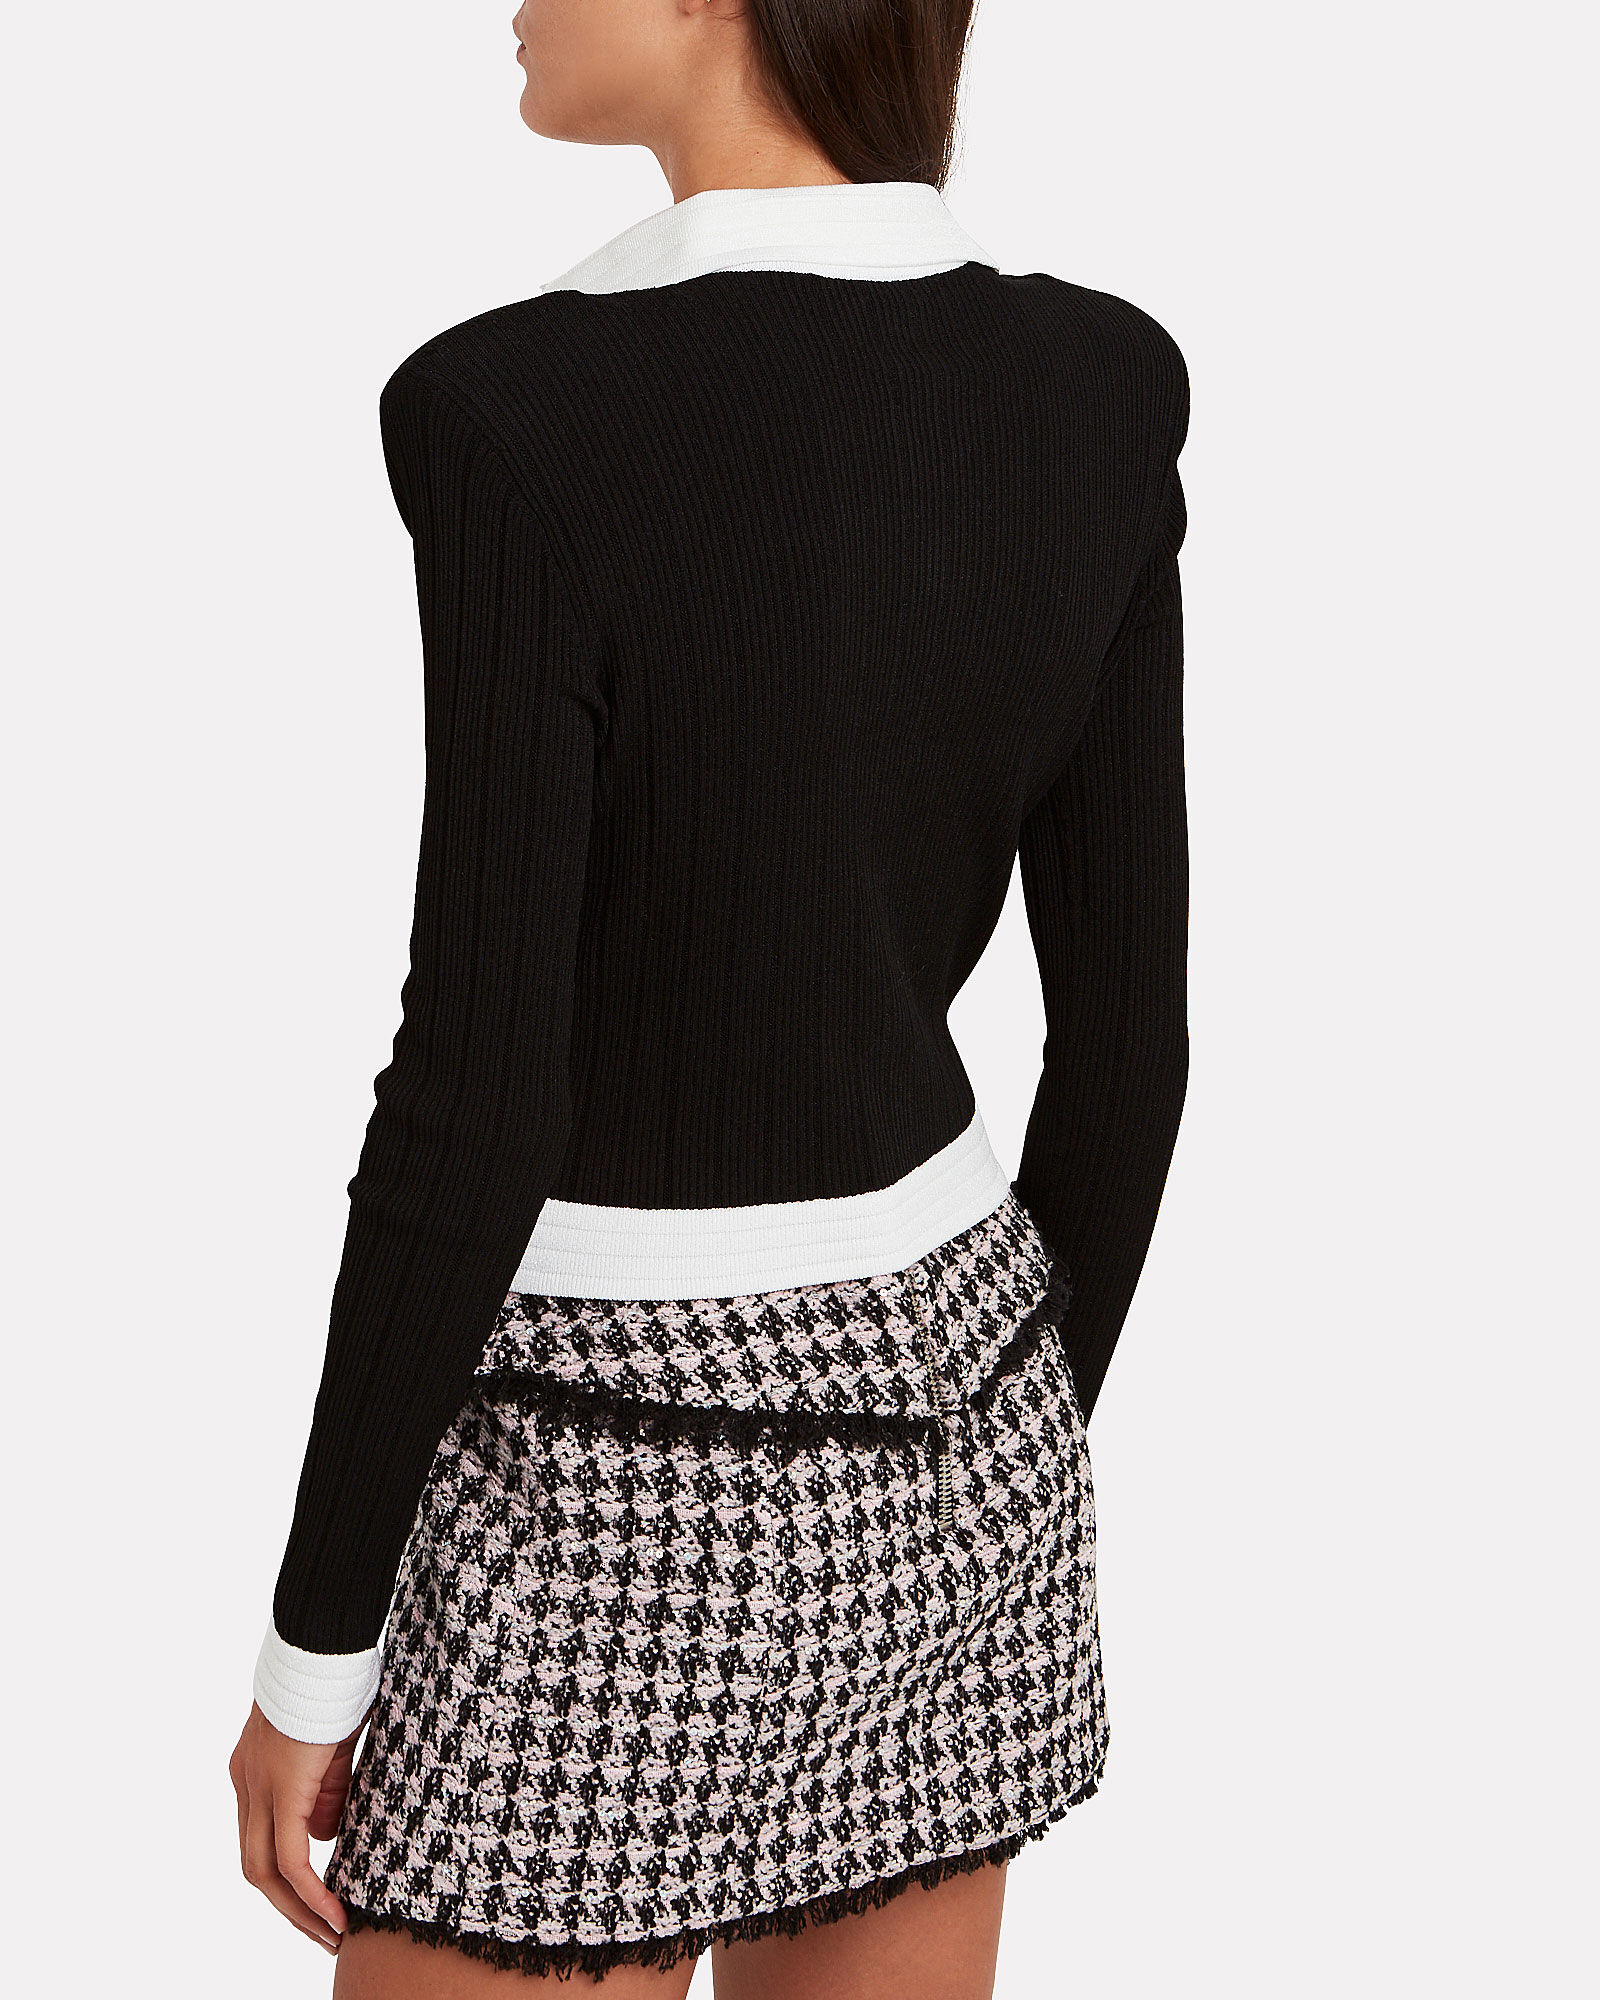 Cropped Rib Knit Cardigan, BLK/WHT, hi-res